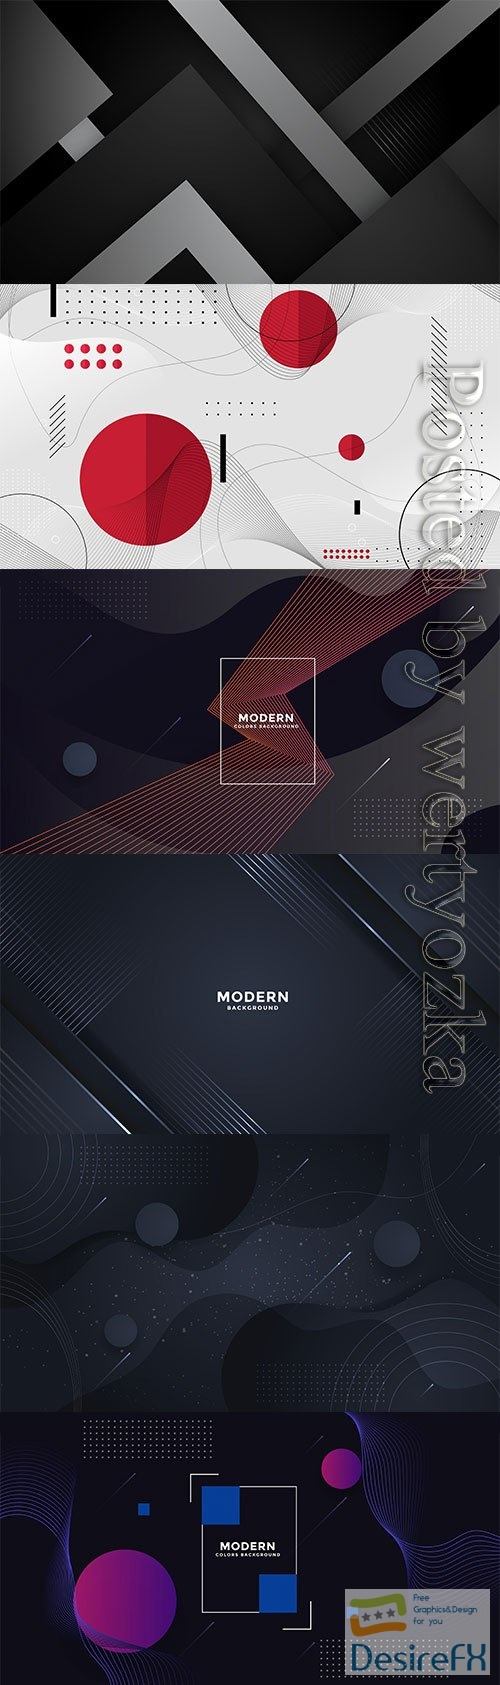 Dark 3d geometric vector background template design